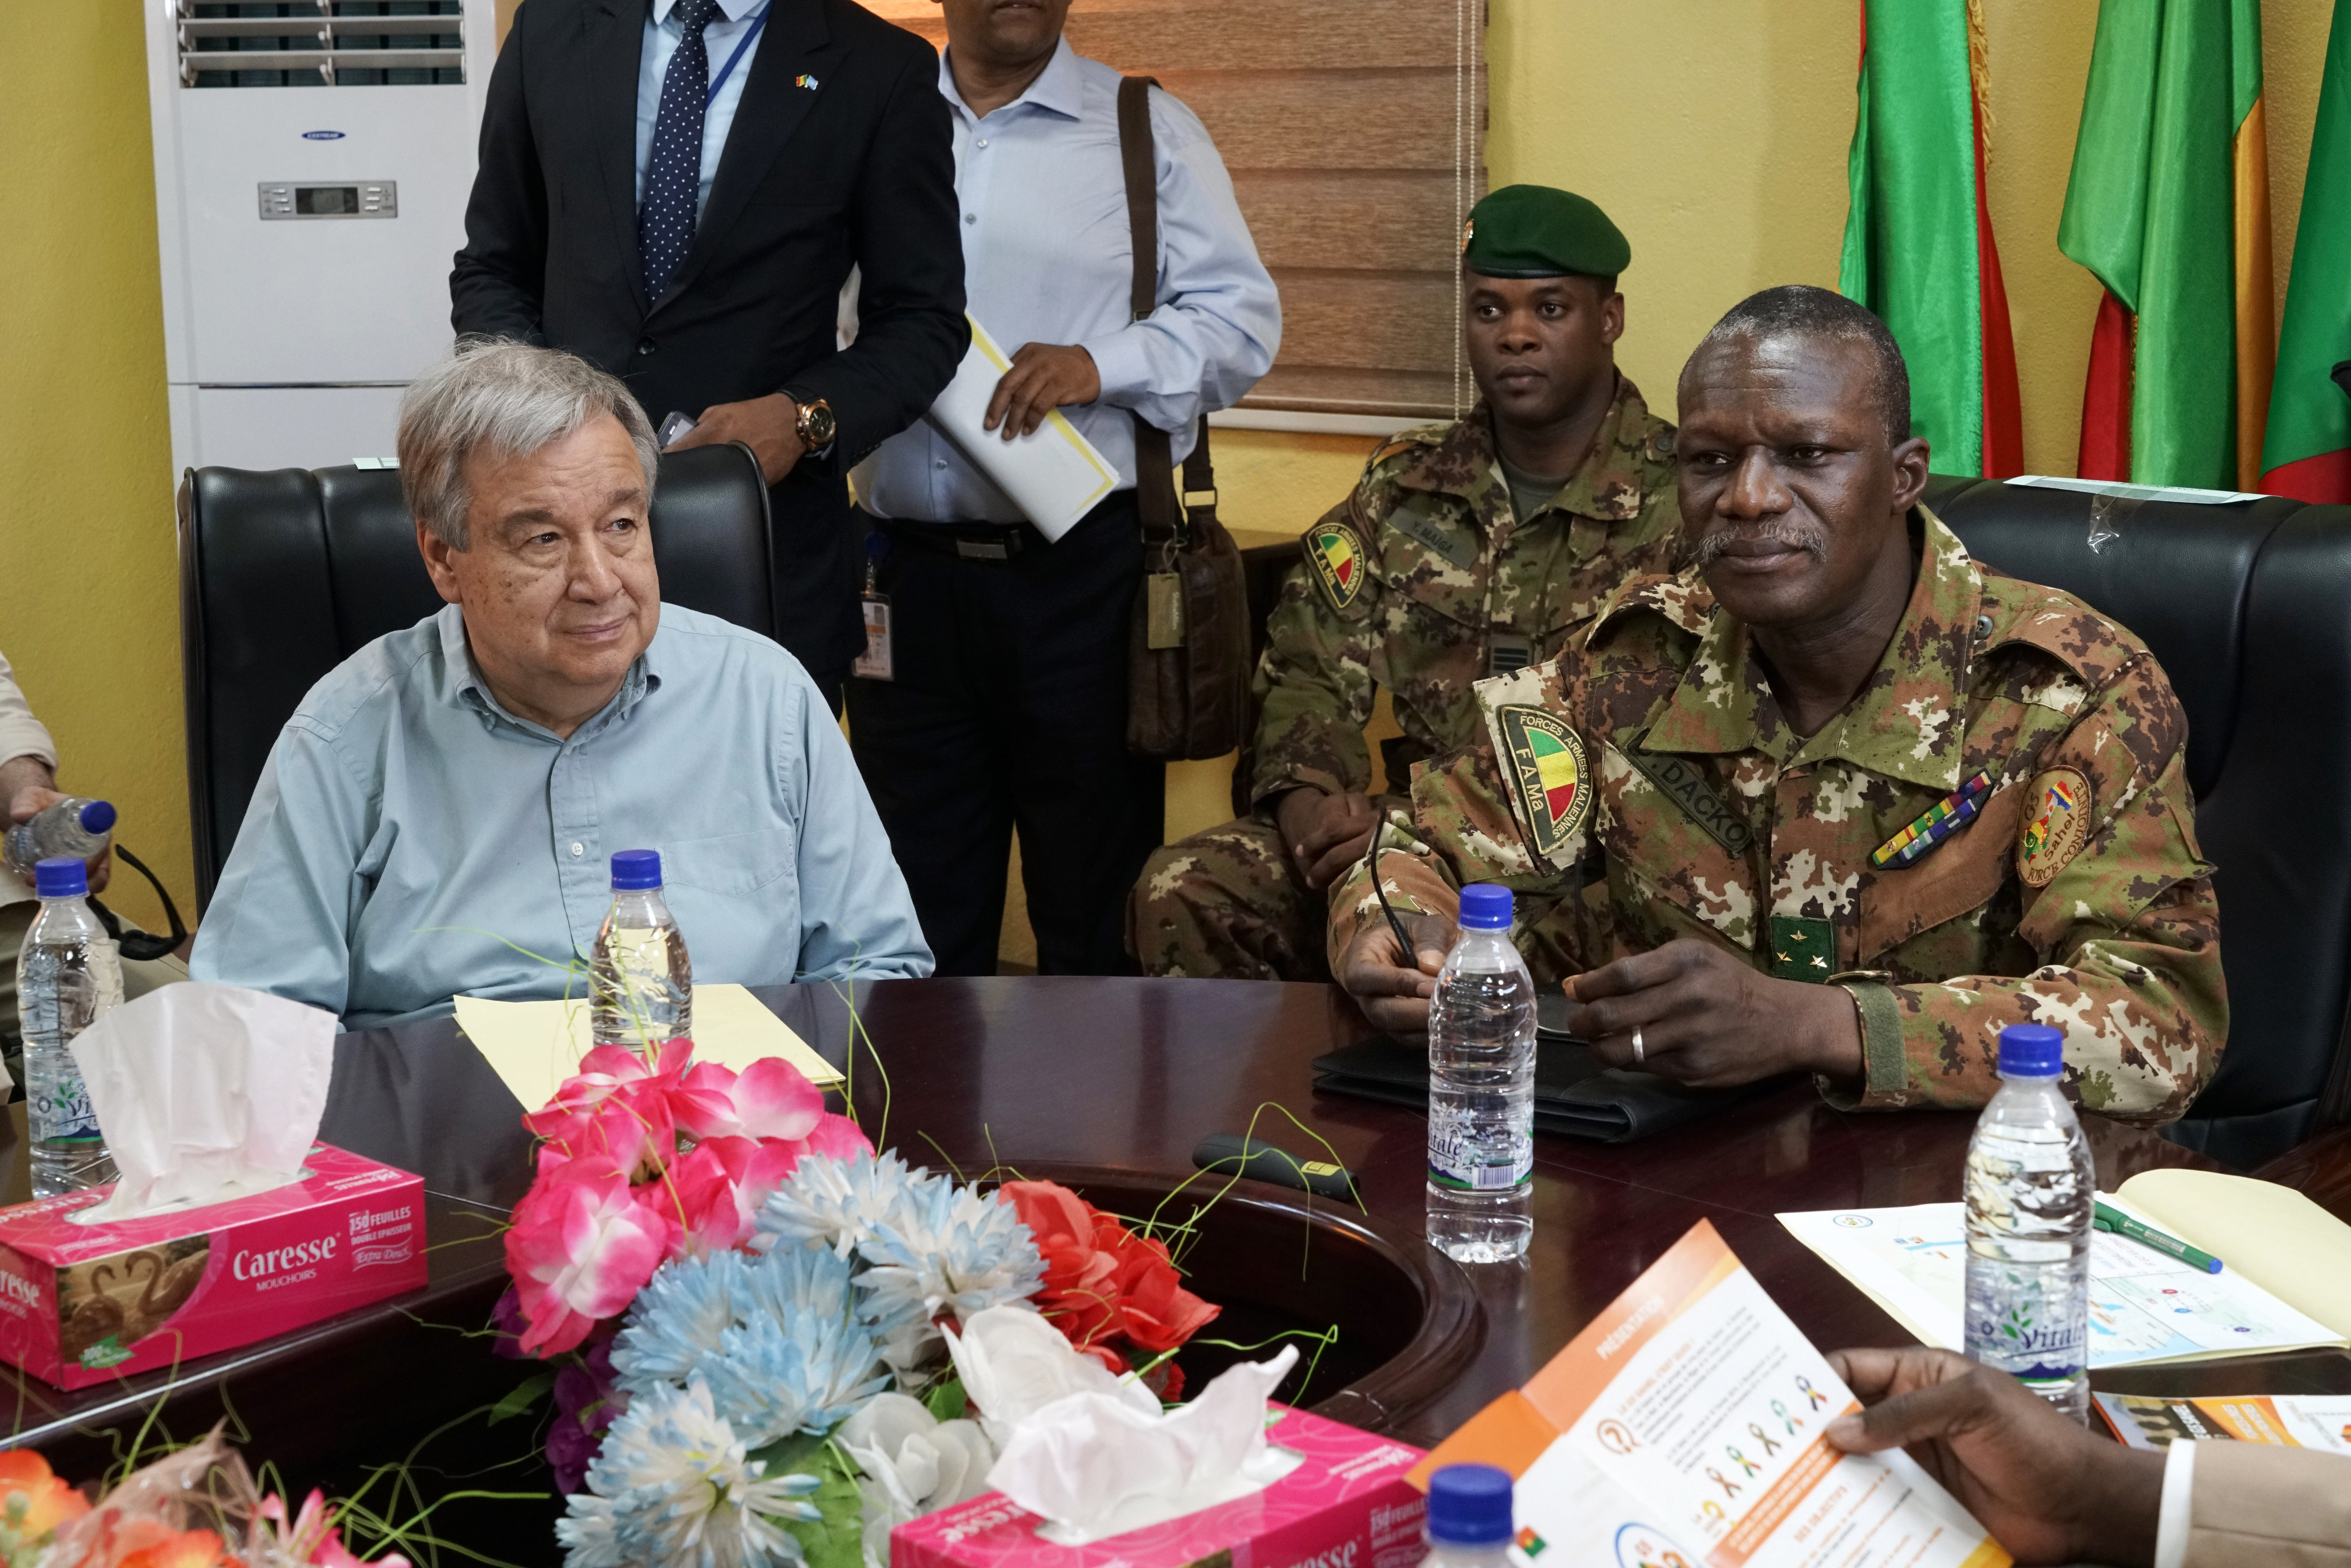 UN Secretary-General Antonio Guterres, left,  meets with Malian Army General Didier Dacko, Force Commander of the G5 Sahel during Guterres' two-day visit to Mali, May 29, 2018.